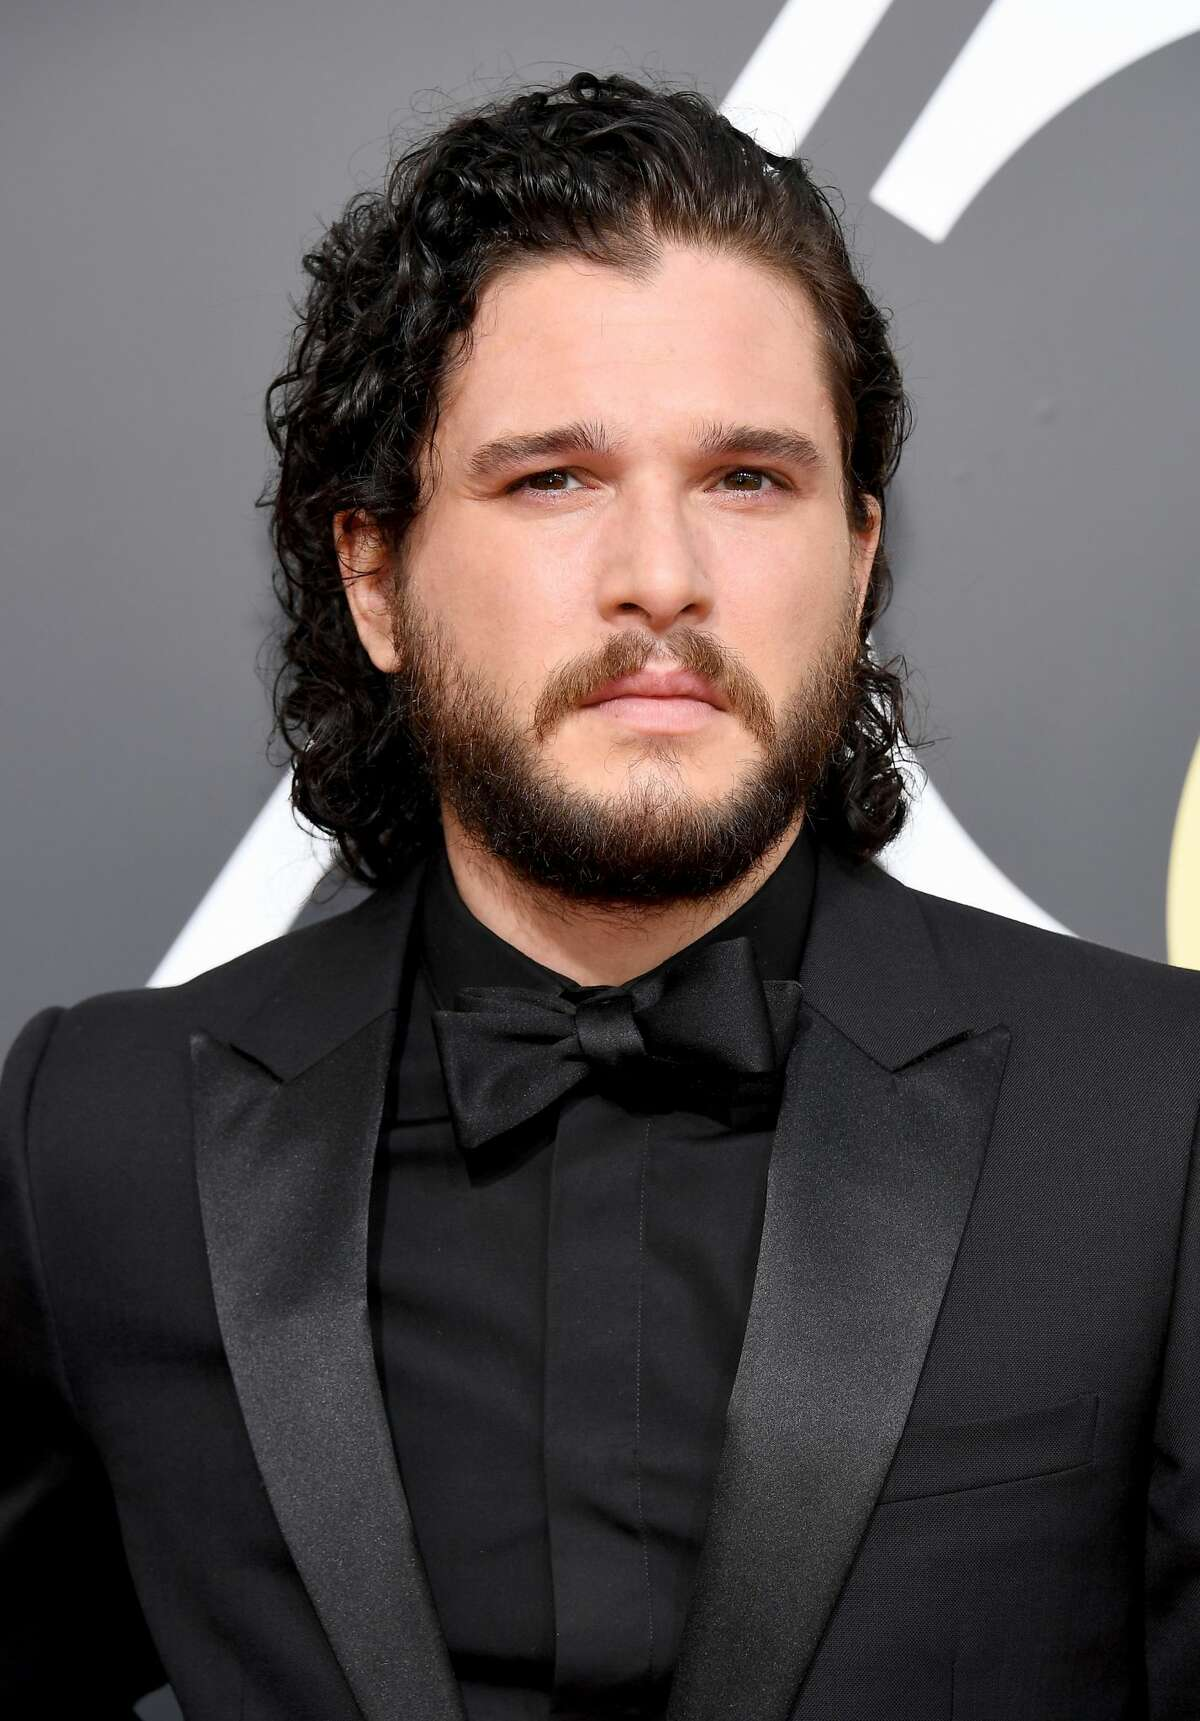 Actor Kit Harrington arrives to the 75th Annual Golden Globe Awards held at the Beverly Hilton Hotel on January 7, 2018.